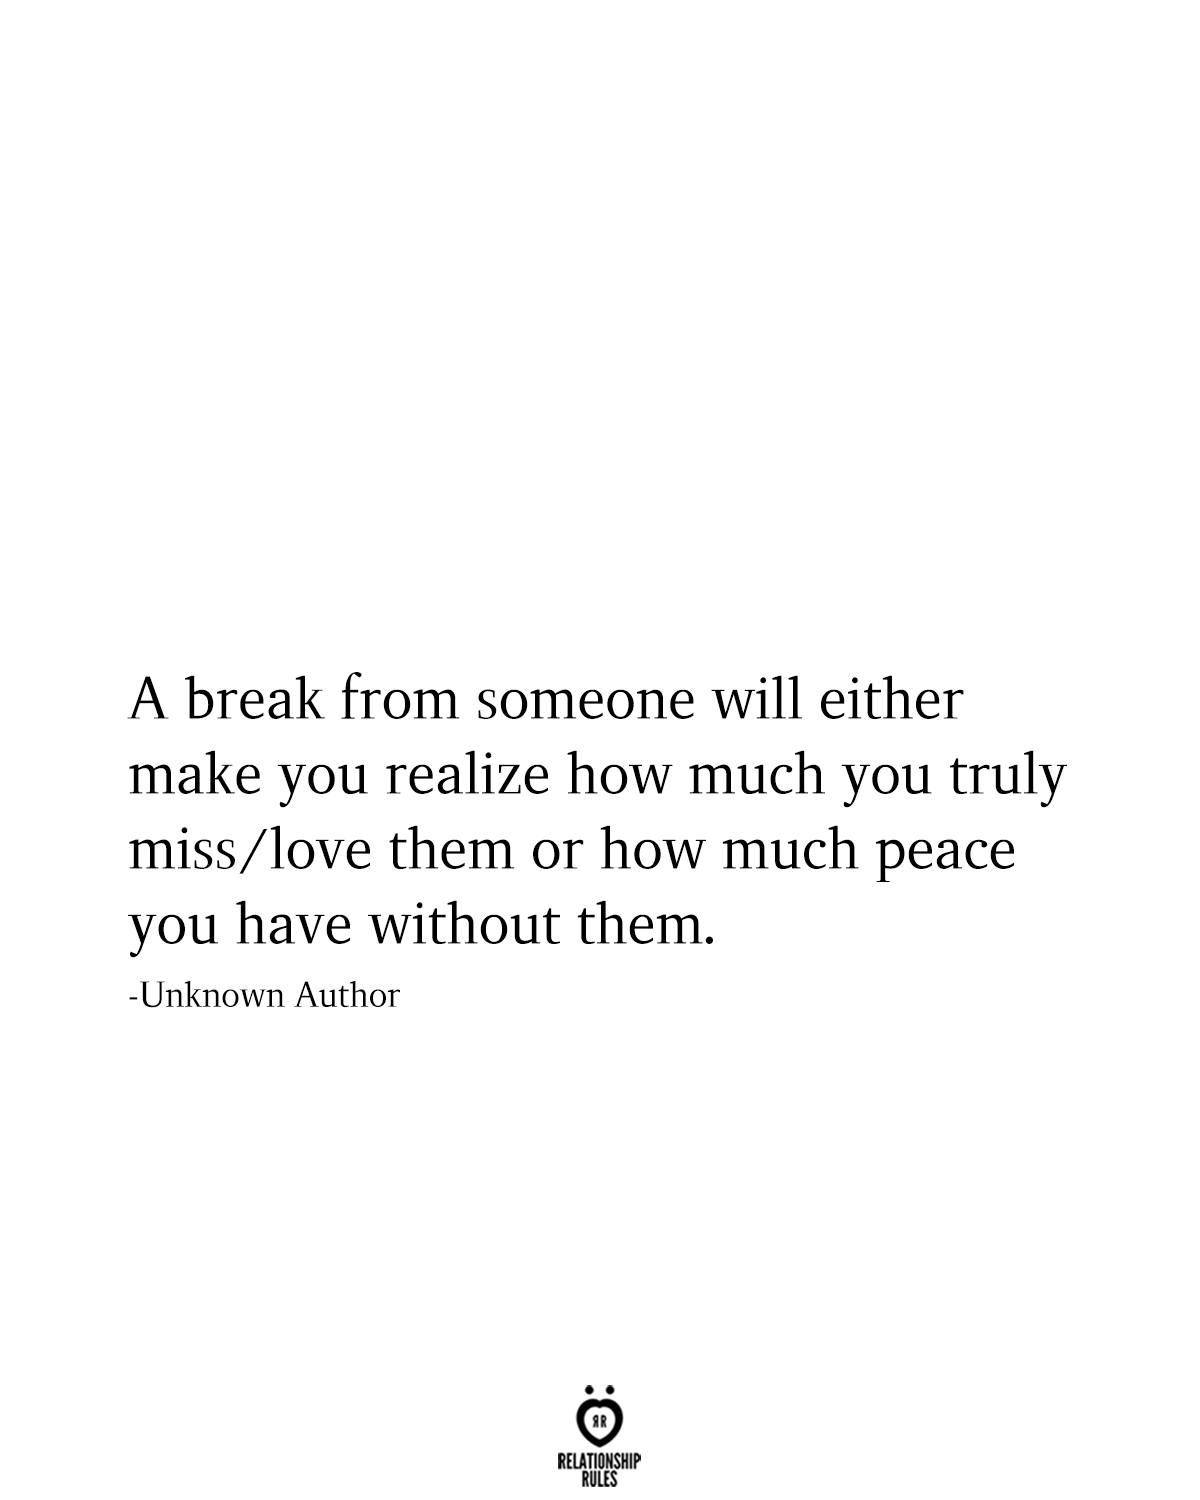 A break from someone will either make you realize how much you truly miss/love them or how much peace you have without them.